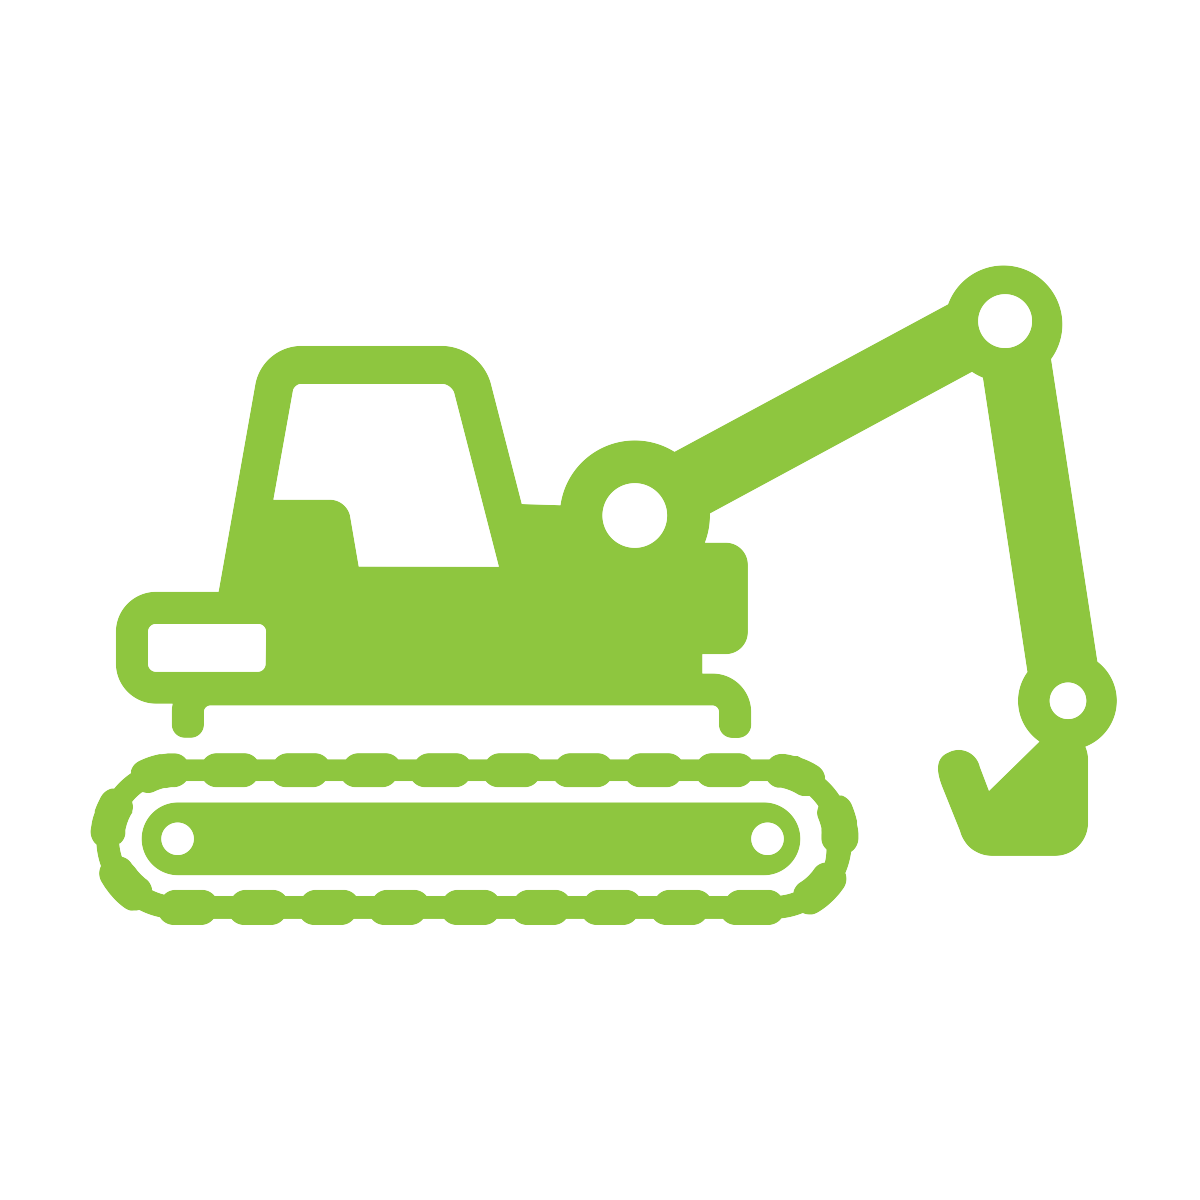 Free on dumielauxepices net. Green clipart digger